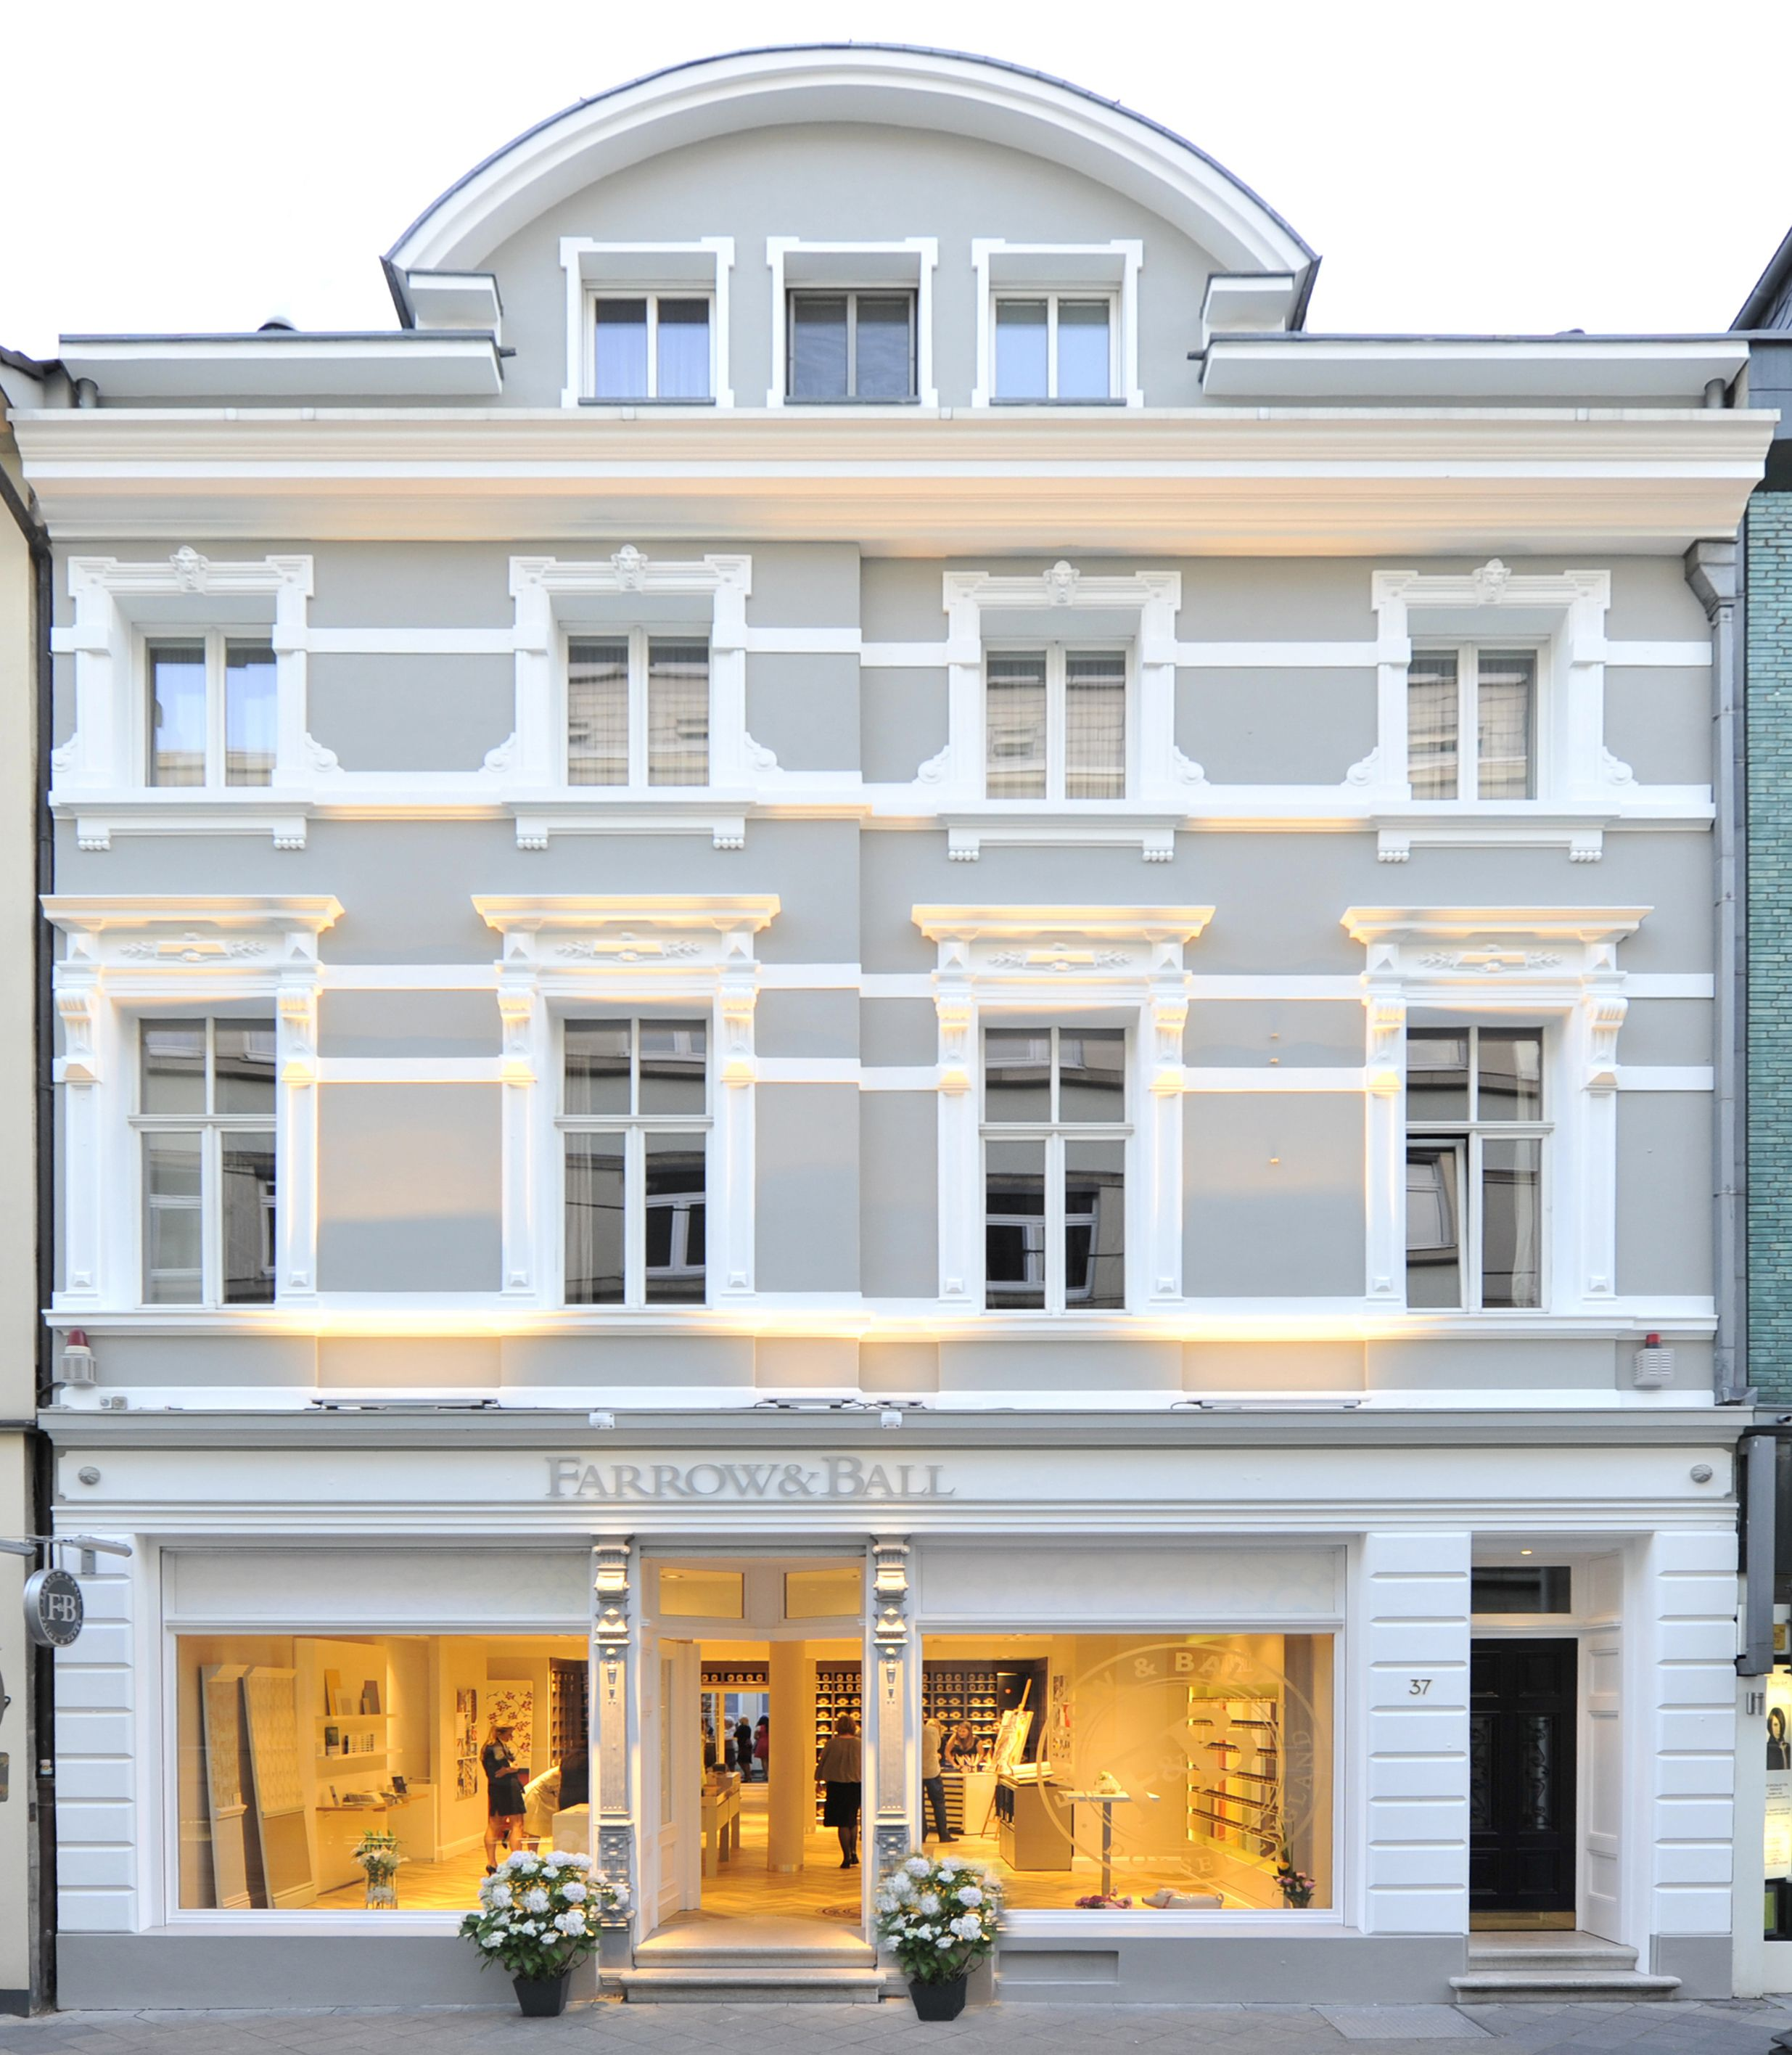 Farrow & Ball Dusseldorf showroom | Color | Pinterest | Farrow ball ...